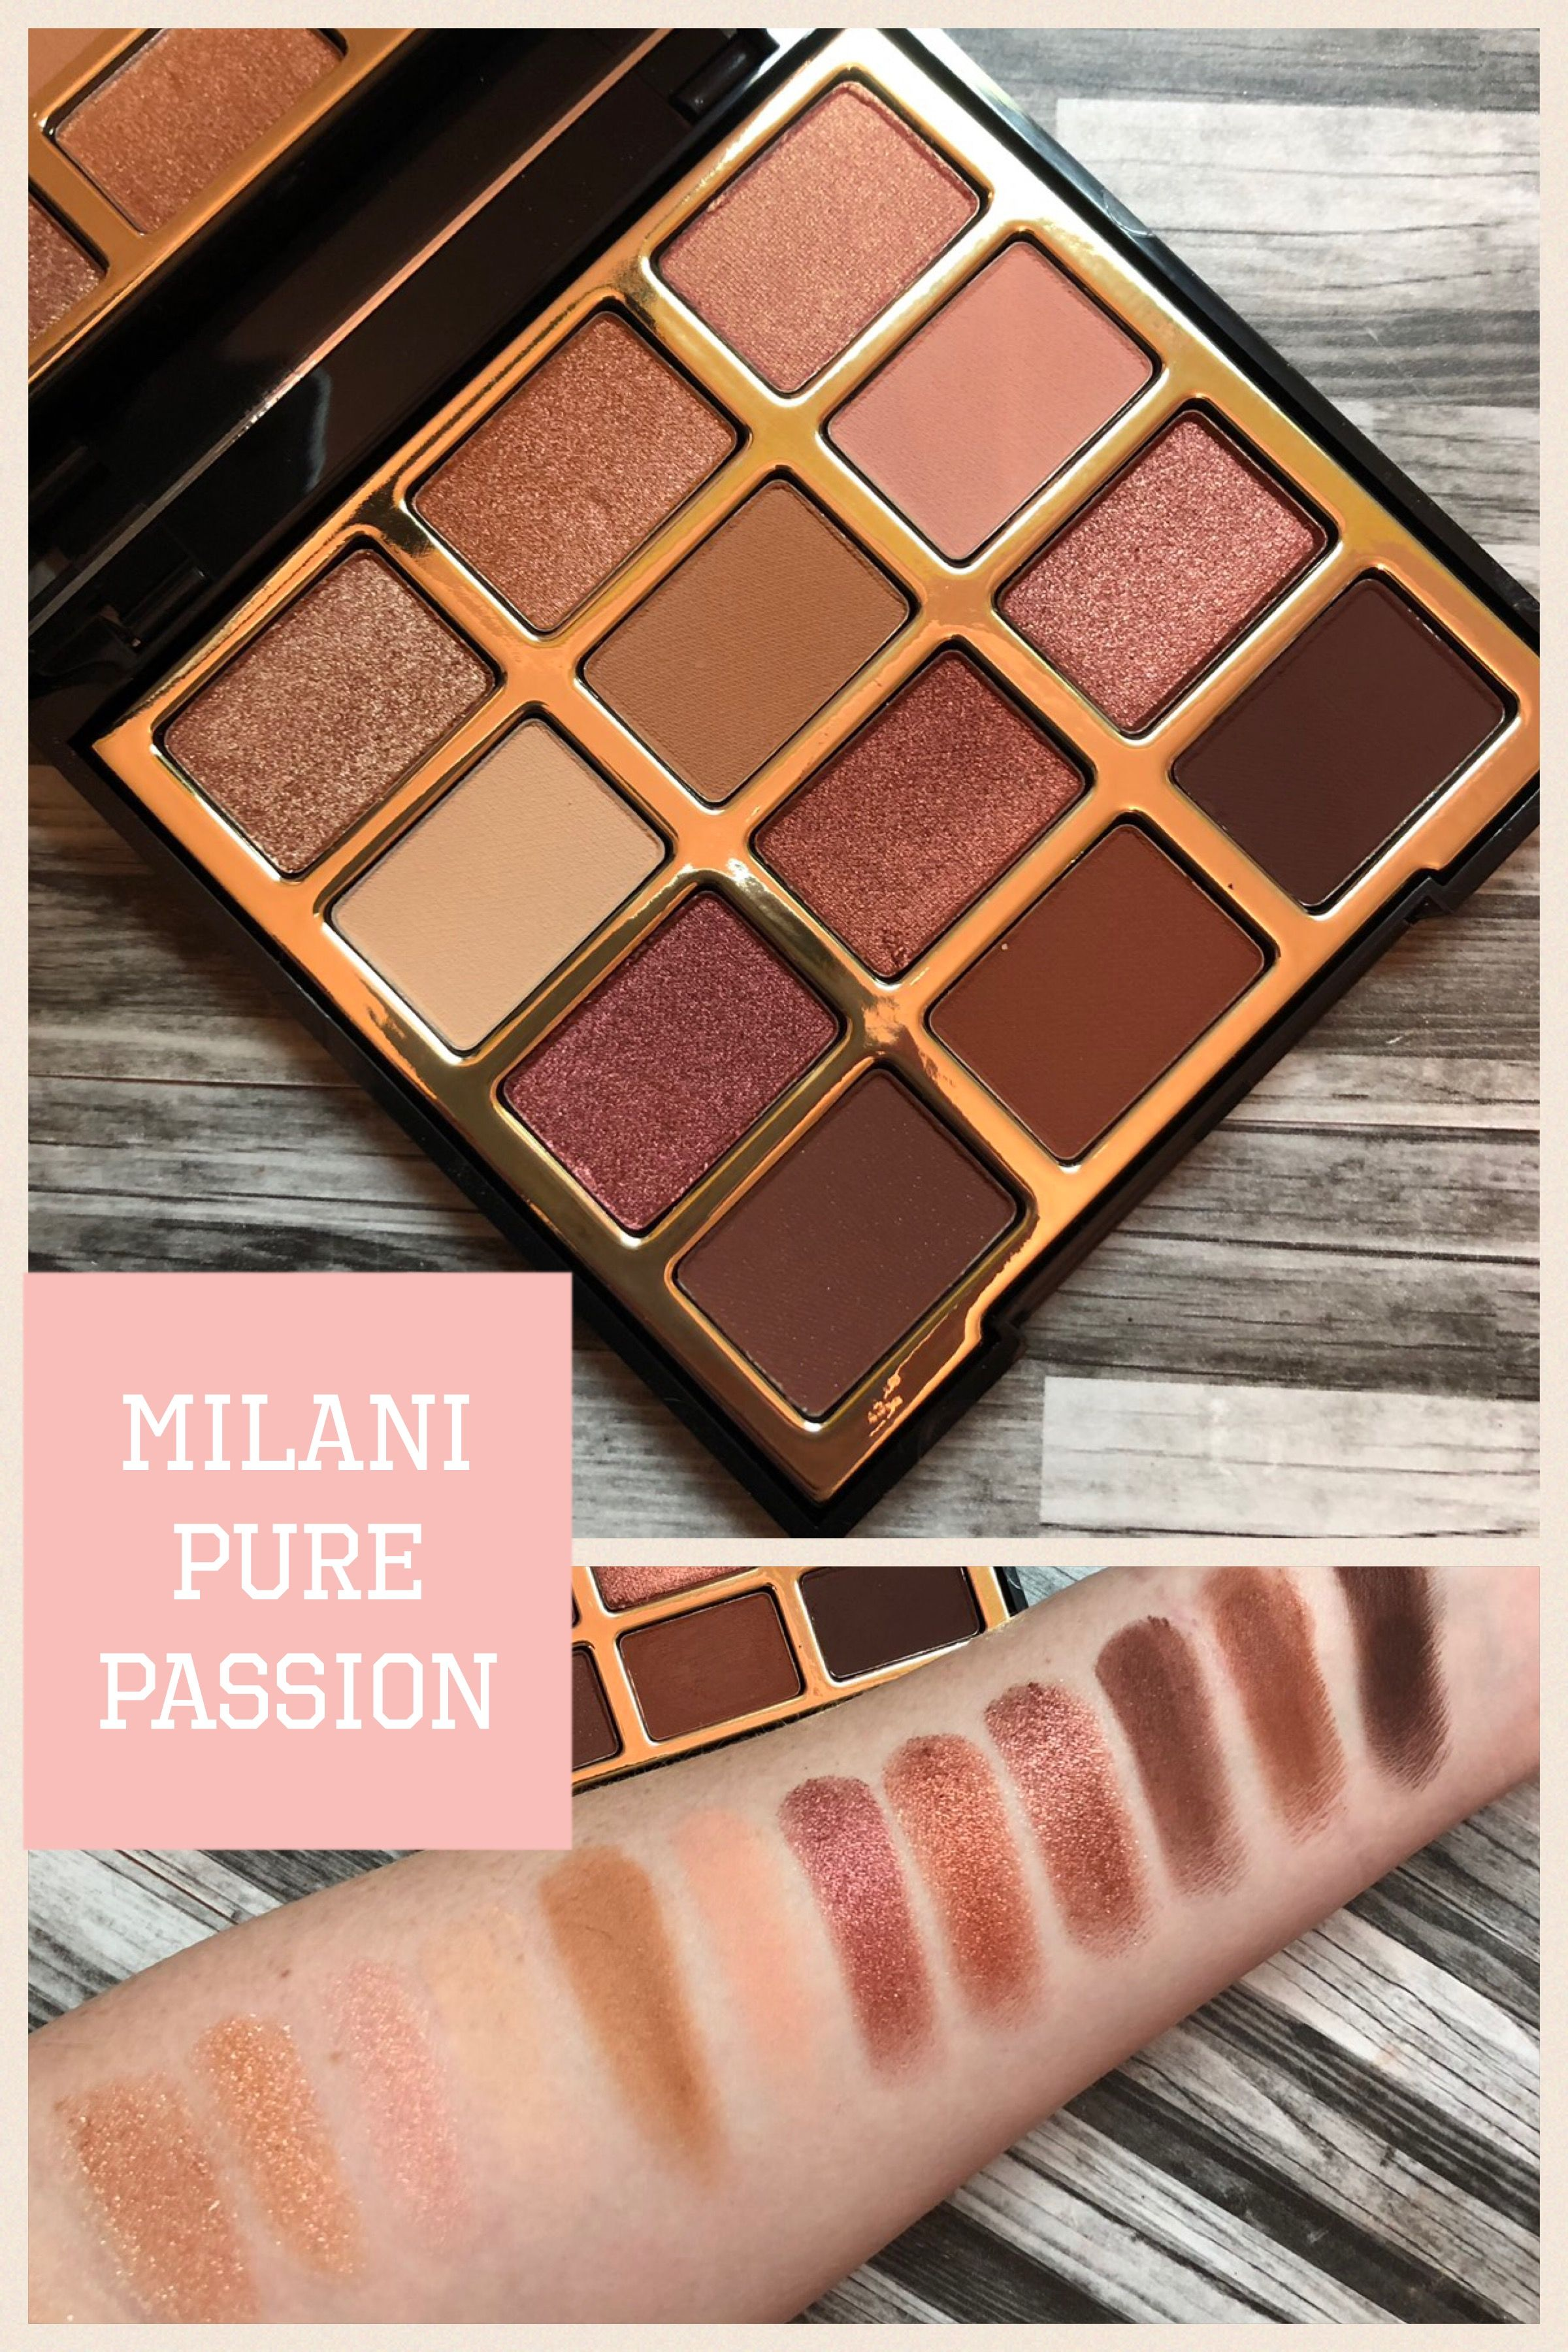 Photo of Milani Pure Passion (Review and Swatches) Drugstore Eyeshadow